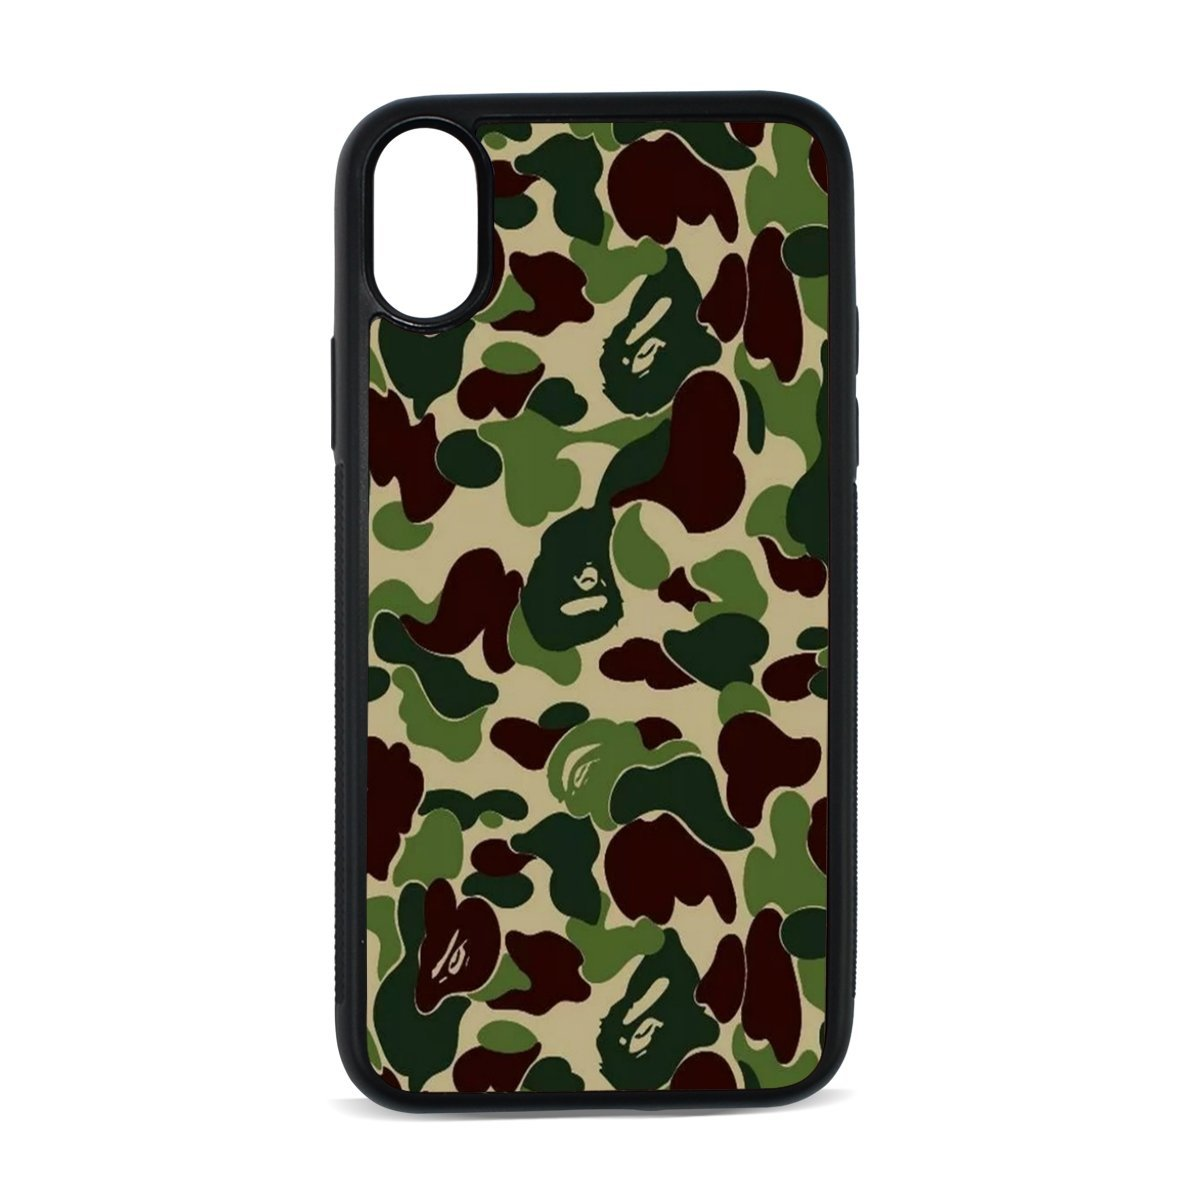 Brisper Camouflage Pattern IphoneX Case Black Rubber Mobile Phone Protective Shell